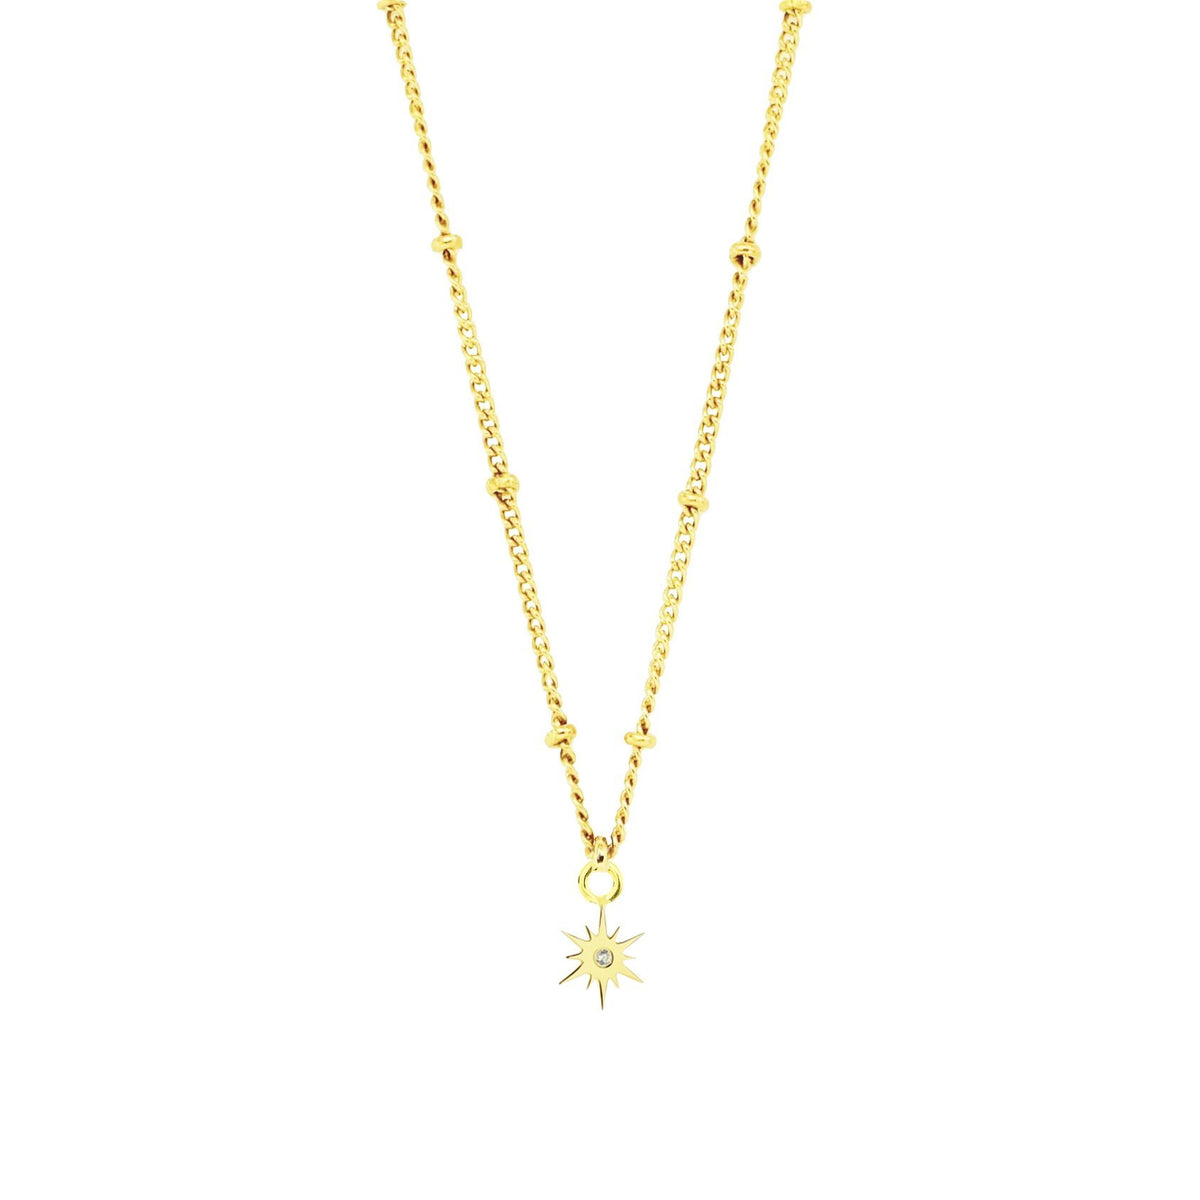 BELIEVE STELLAR ICON - CUBIC ZIRCONIA & GOLD - SO PRETTY CARA COTTER